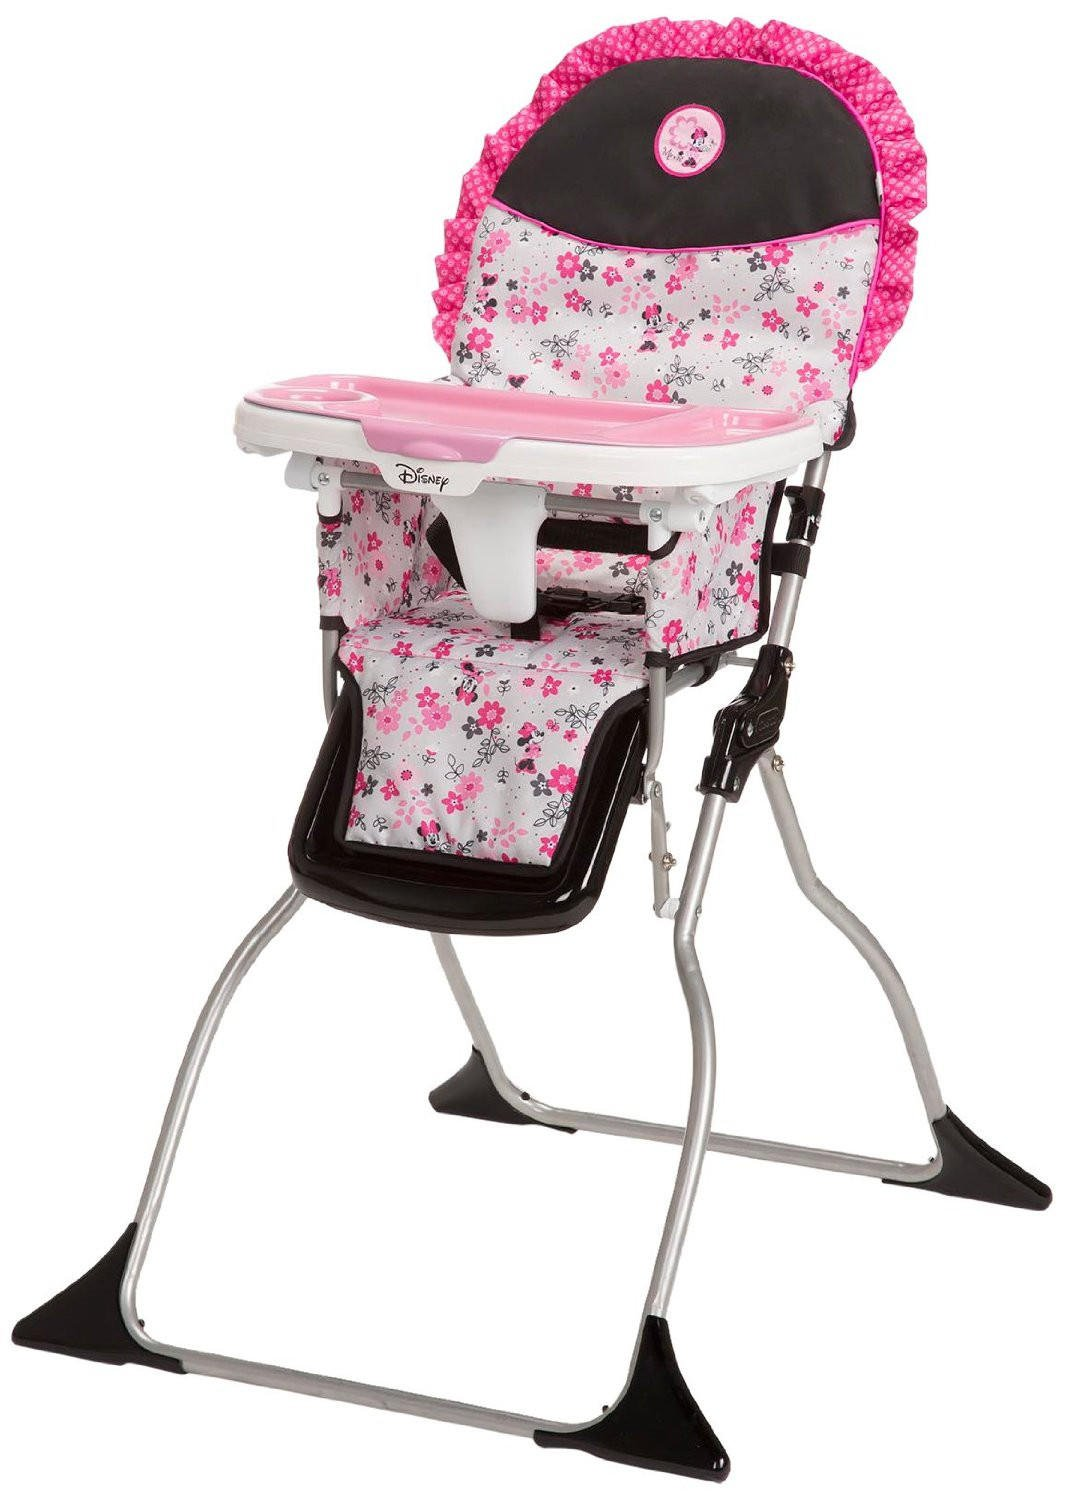 Disney Simple Fold Plus High Chair From Nurzery Cribs